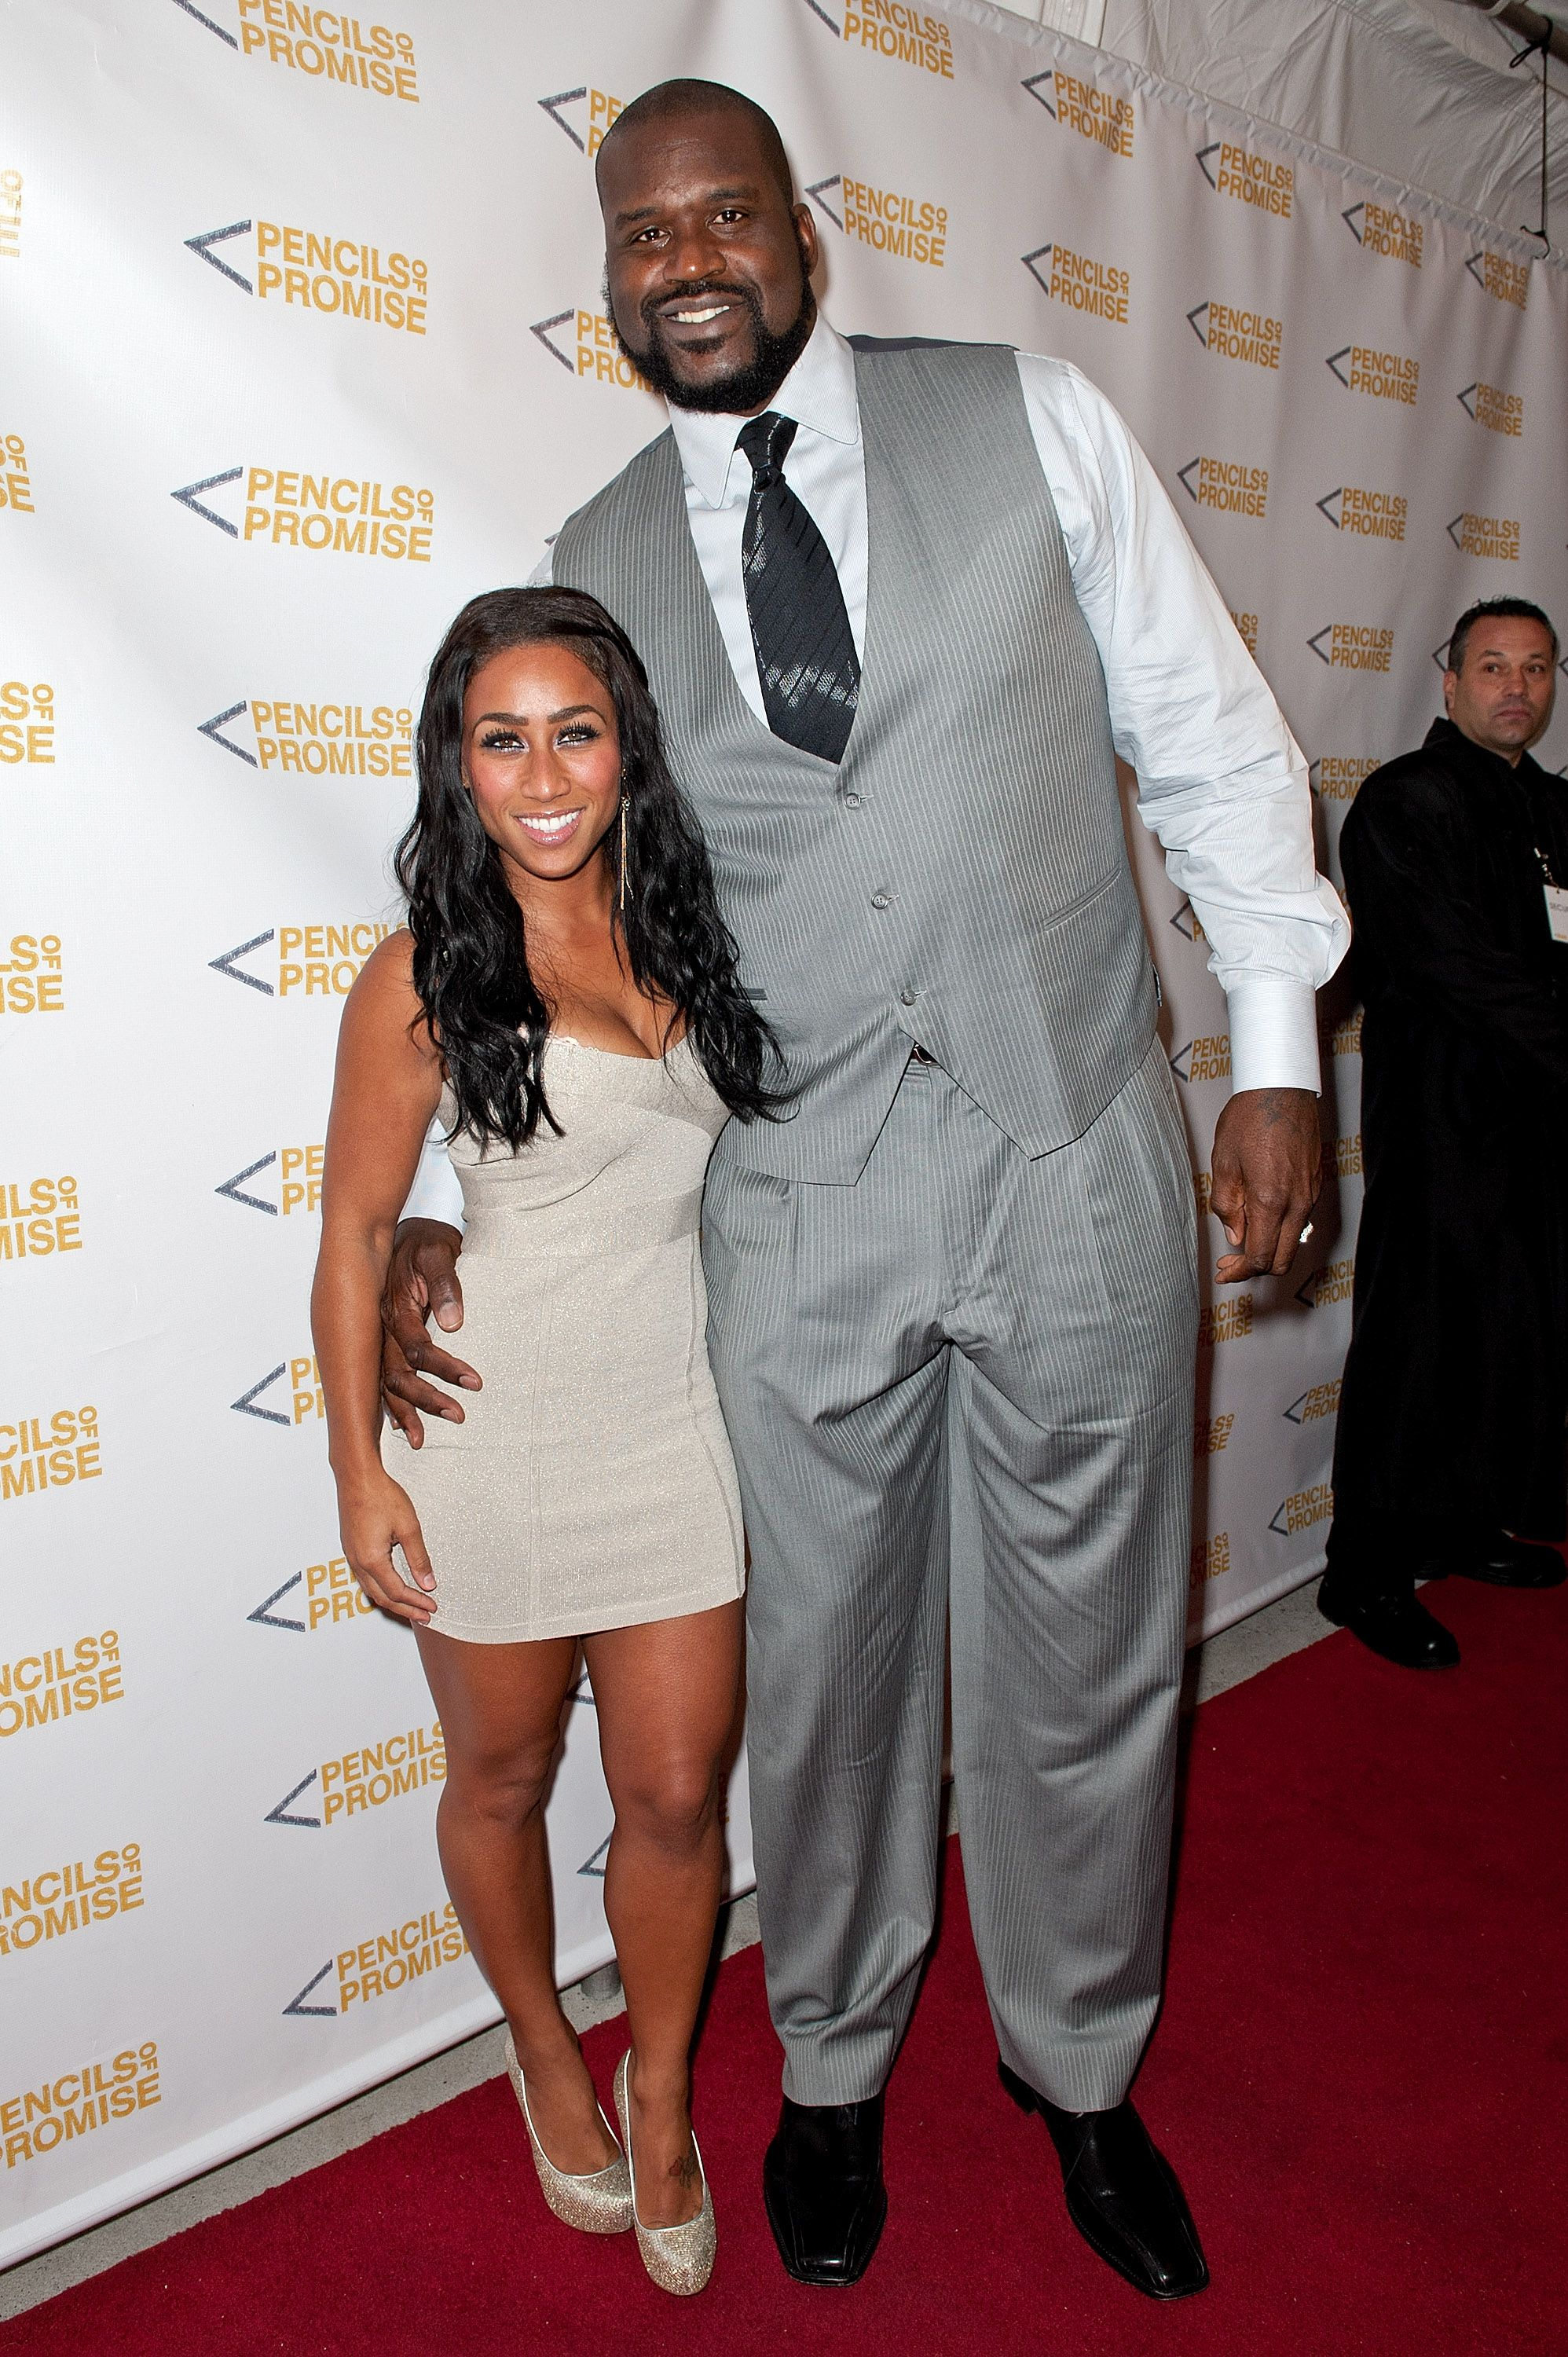 689b592f09d381 20 Celebrity Couples With a Major Height Difference | Love and ...